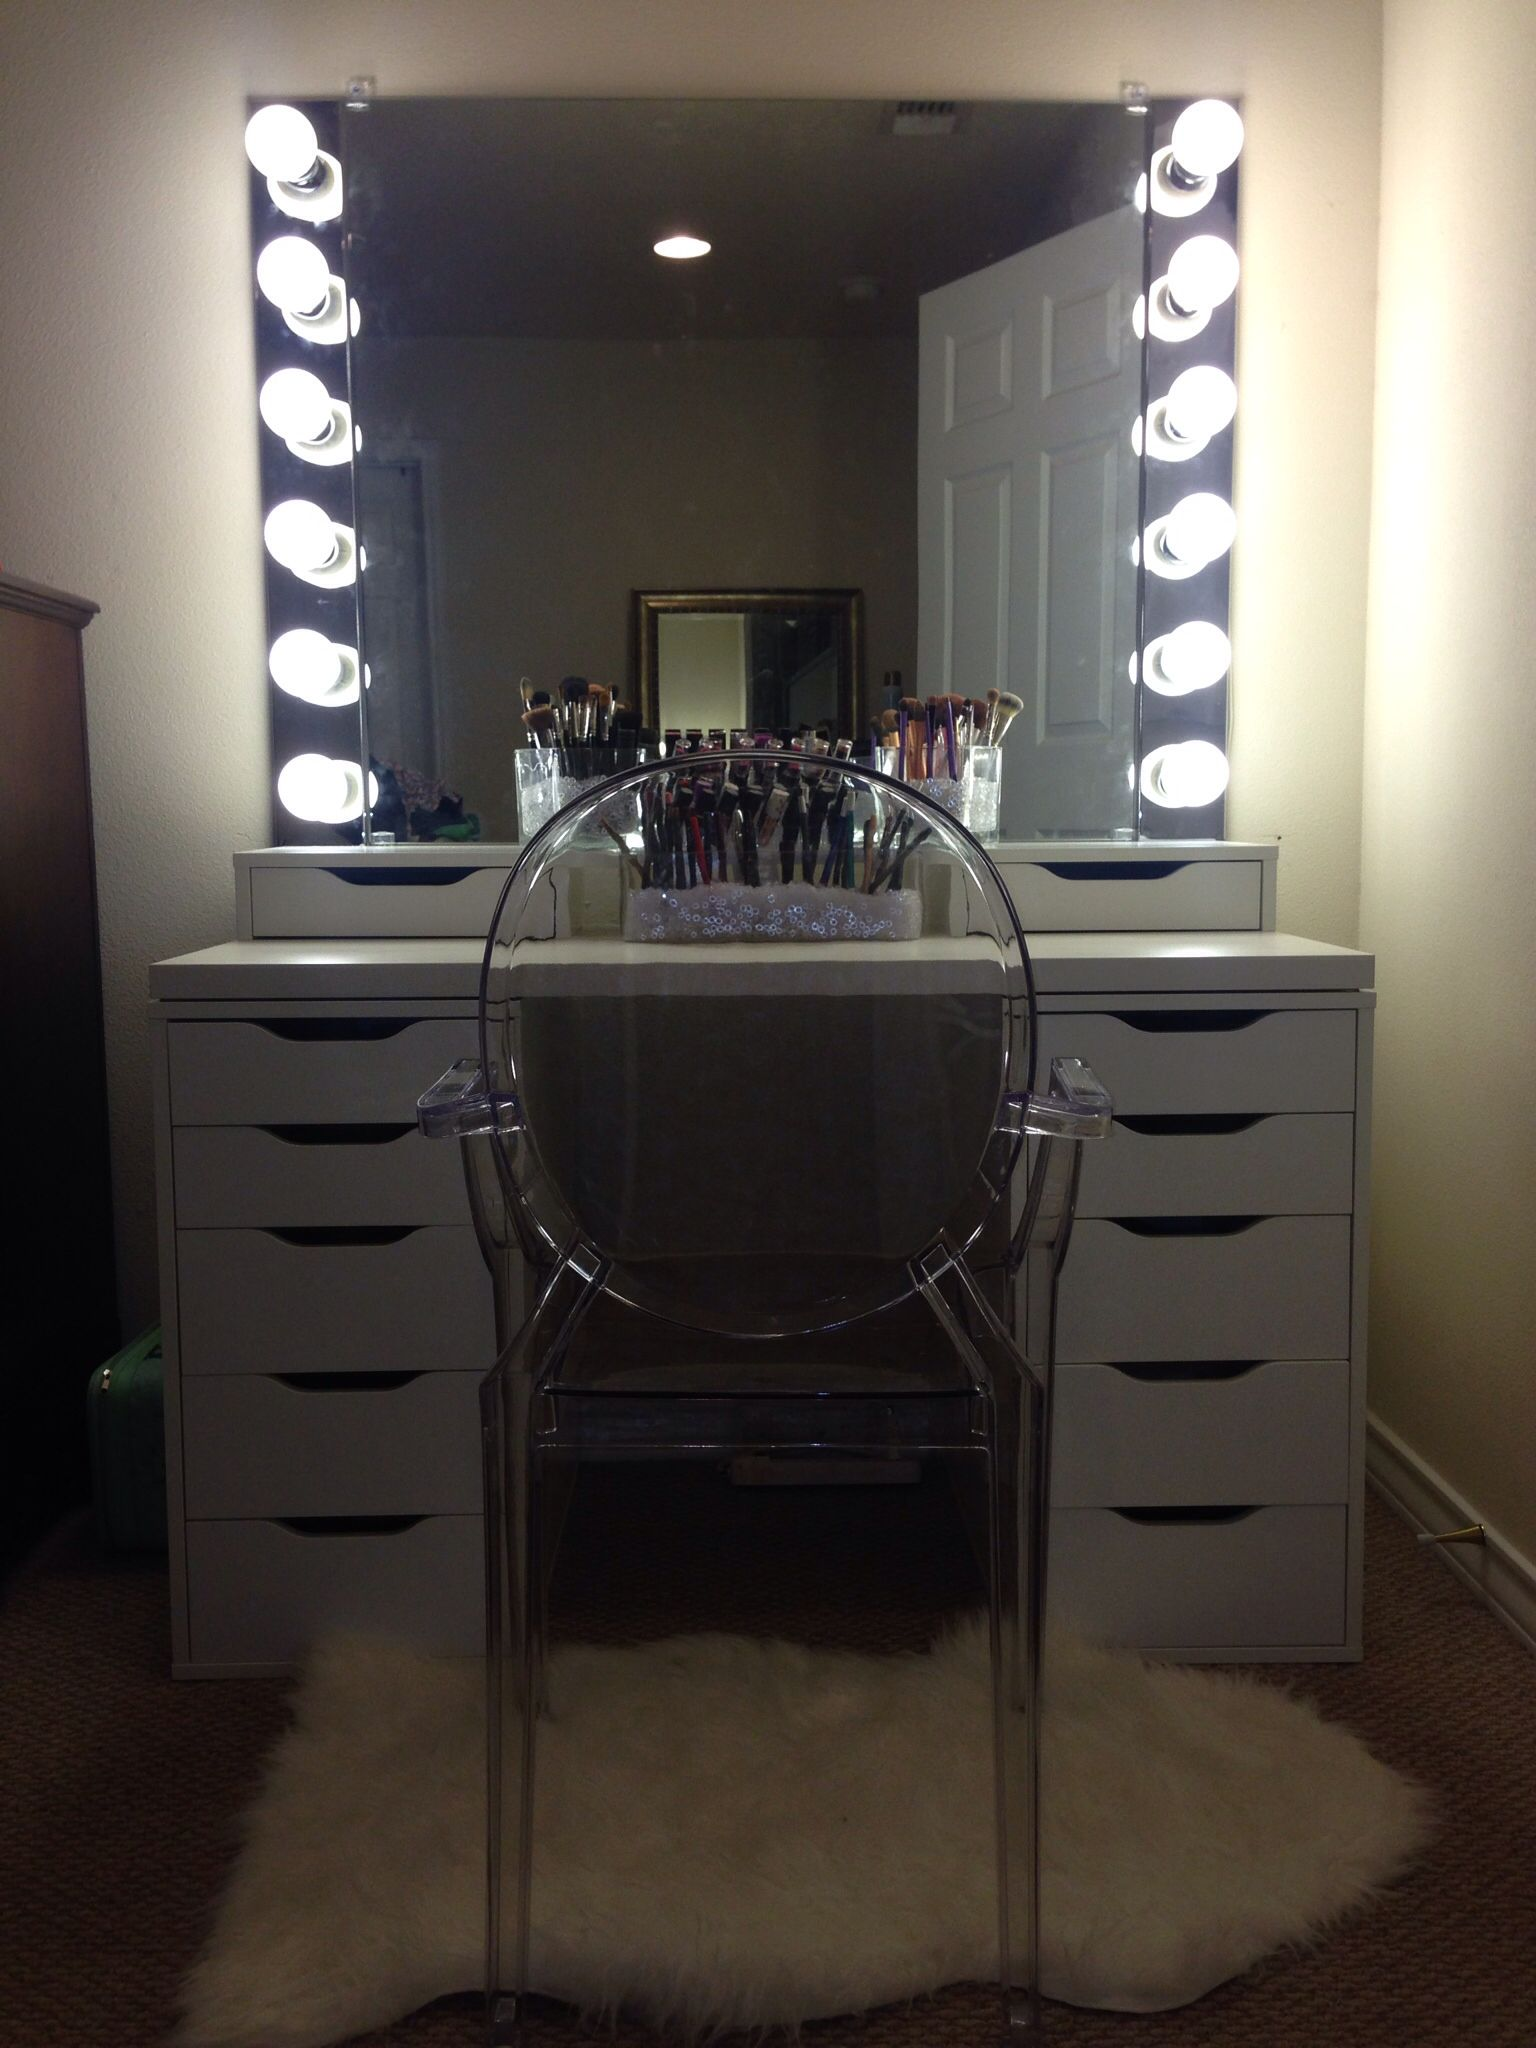 Diy vanity mirror with lights for bathroom and makeup station hollywood vanity mirror with lights makeup vanity mirror with lights vanity mirror with lights ikea lighted makeup mirror hollywood lights vanity aloadofball Gallery